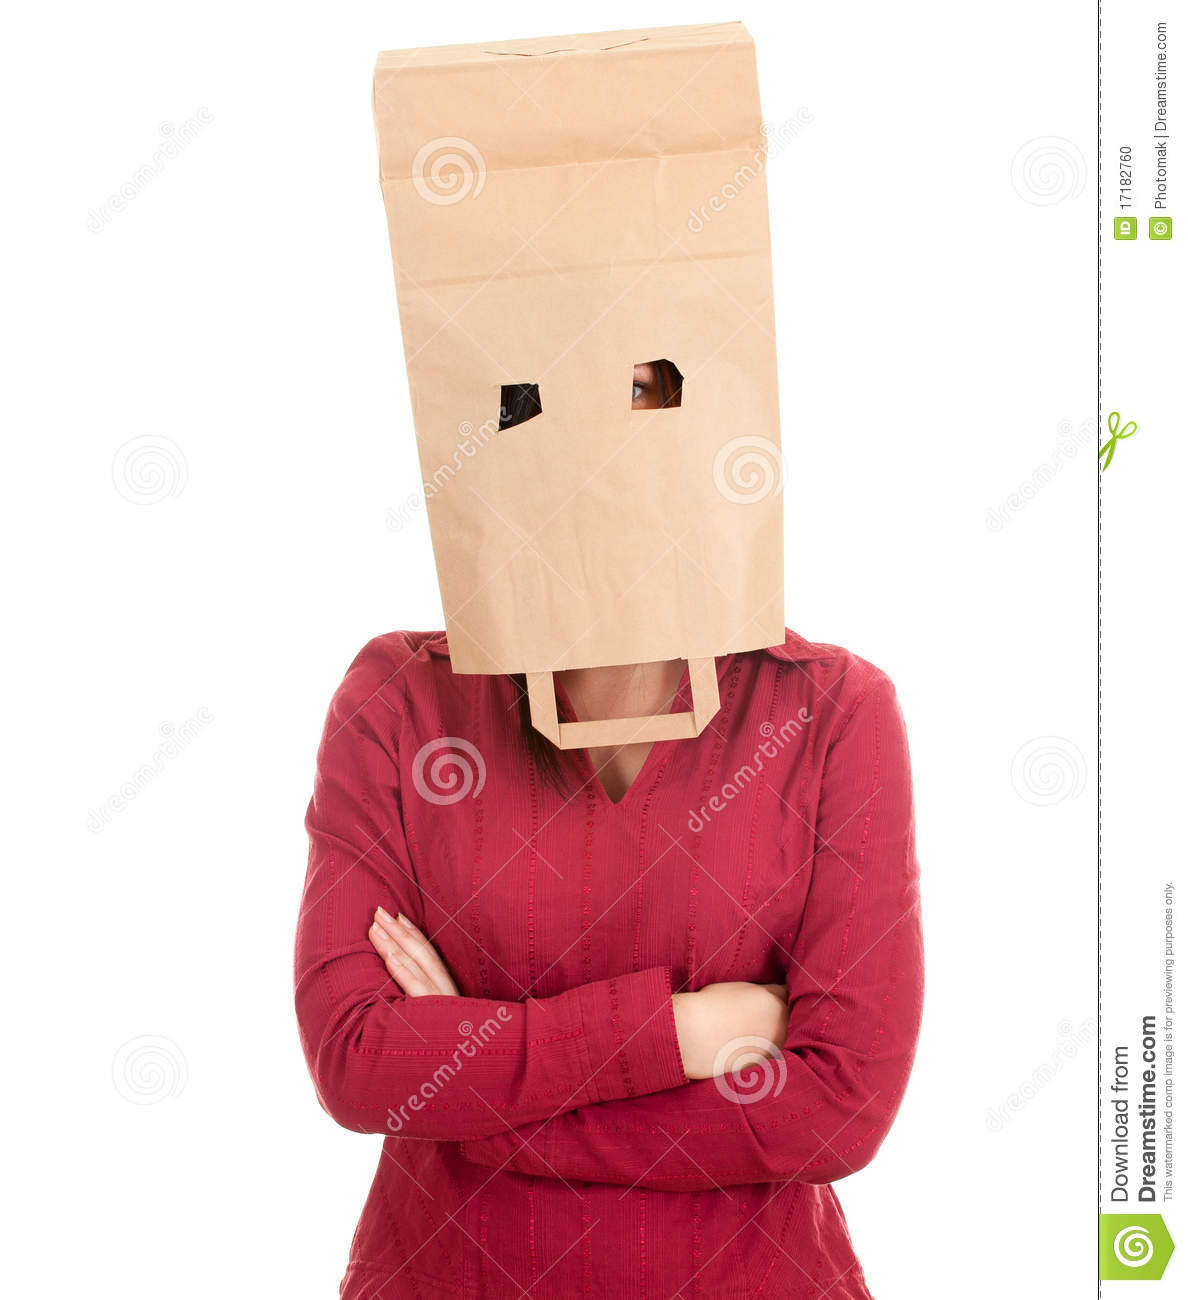 Women With Bag On Head With Perfect Creativity In Spain